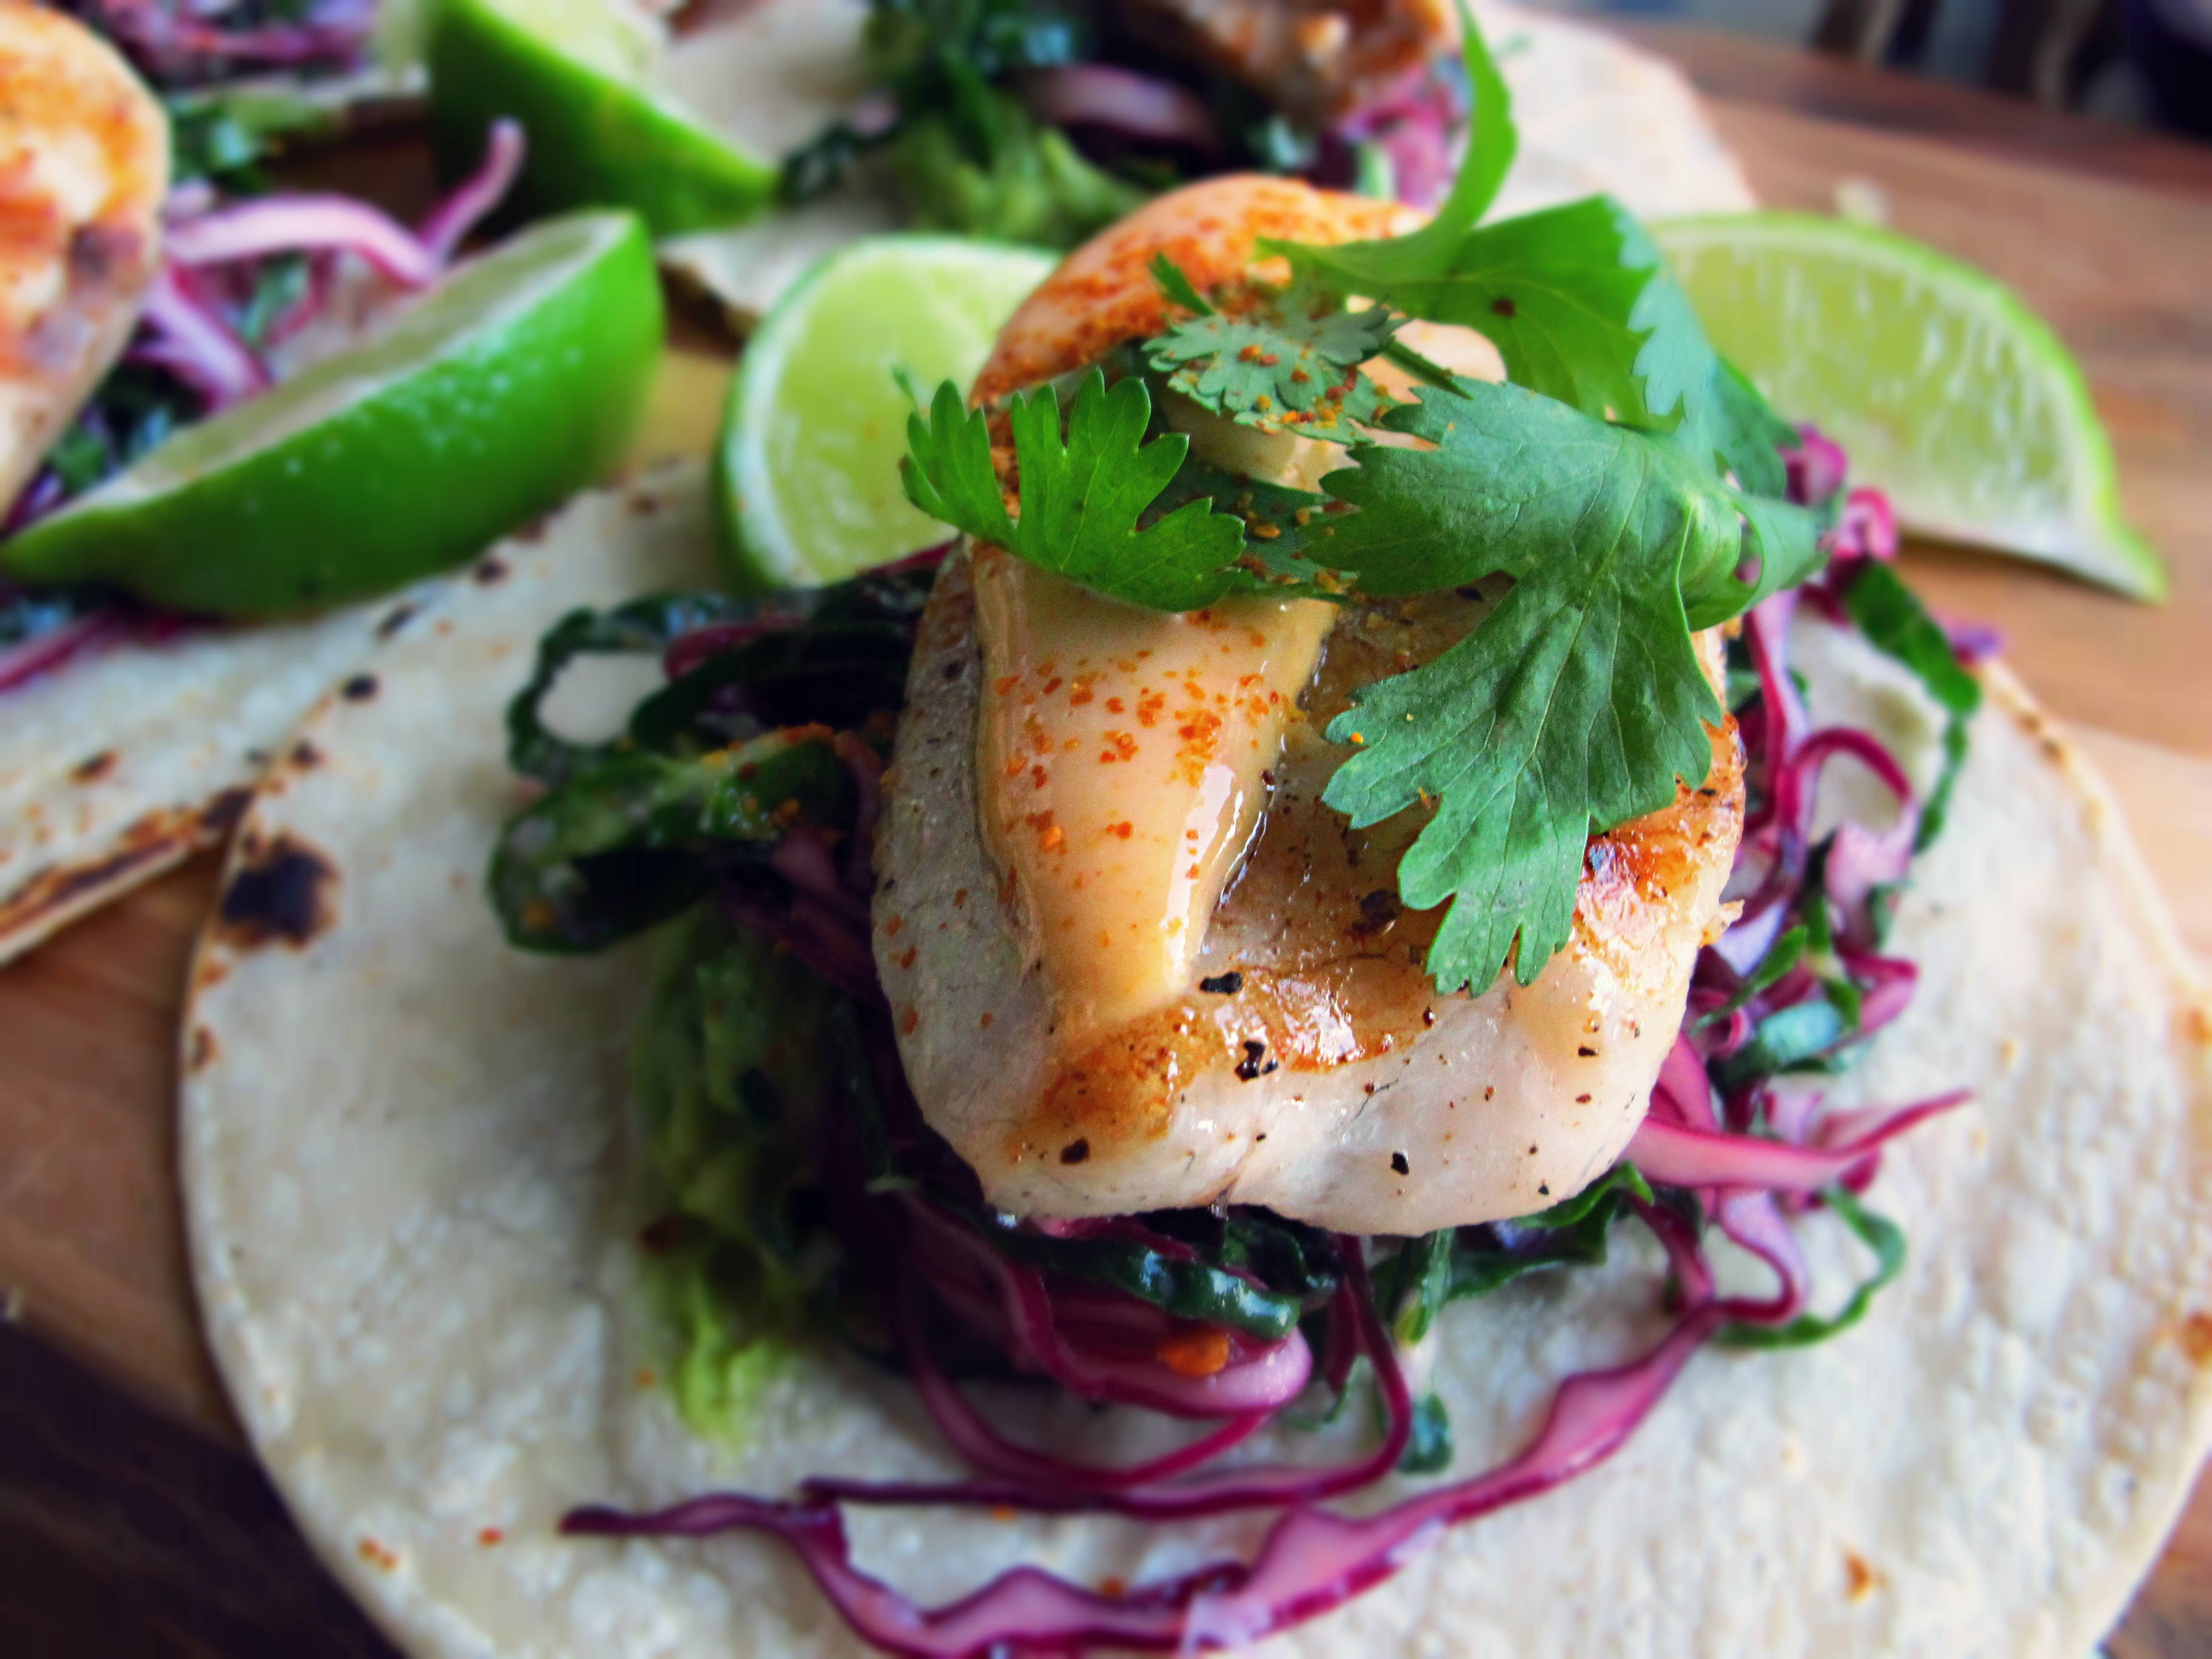 grilled tilapia on a bed of kale and red cabbage slaw